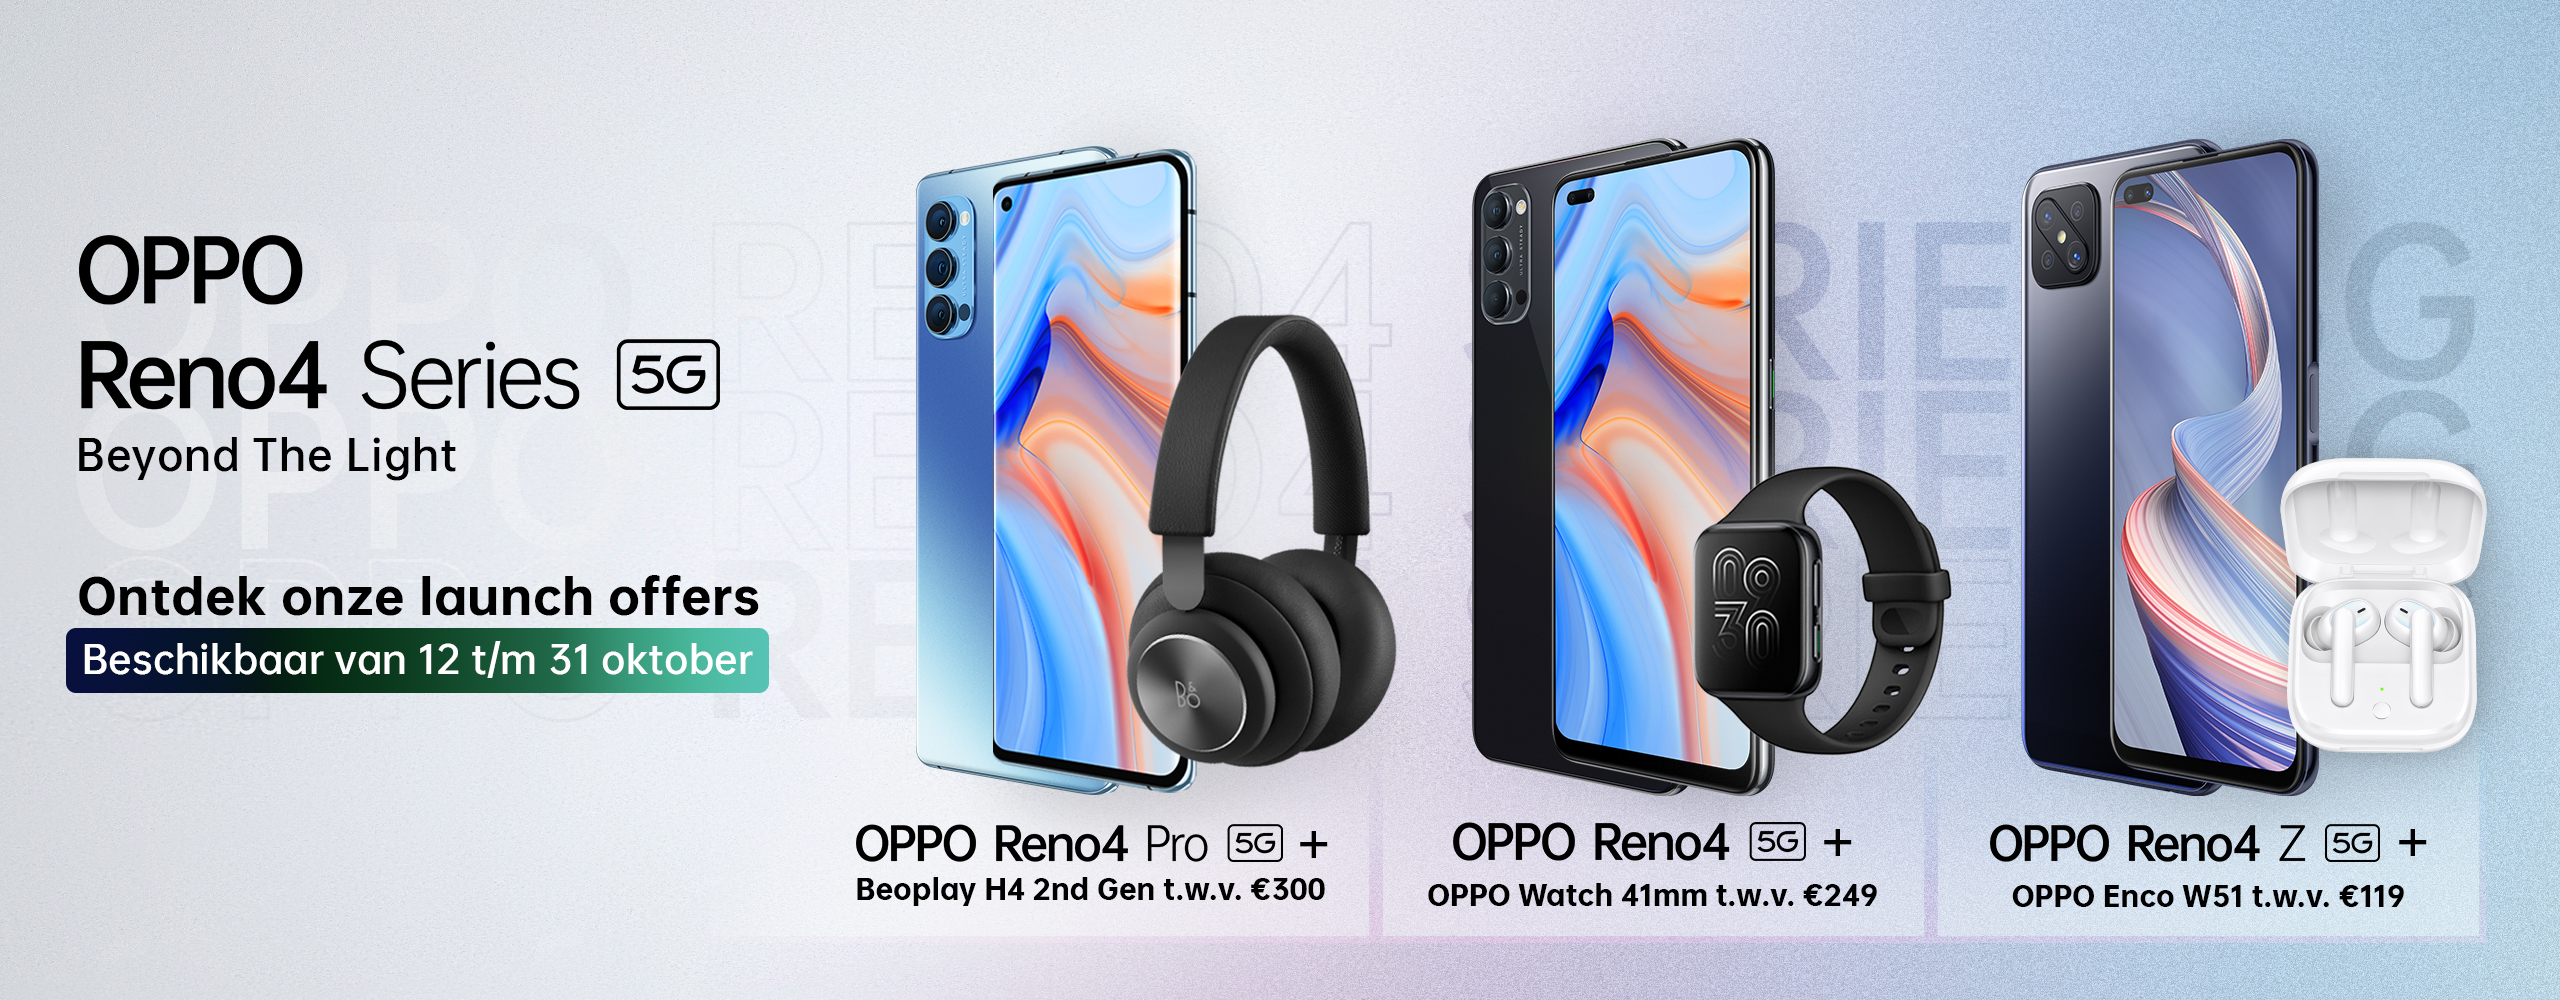 OPPO Reno4 Series 5G - Launch Offer